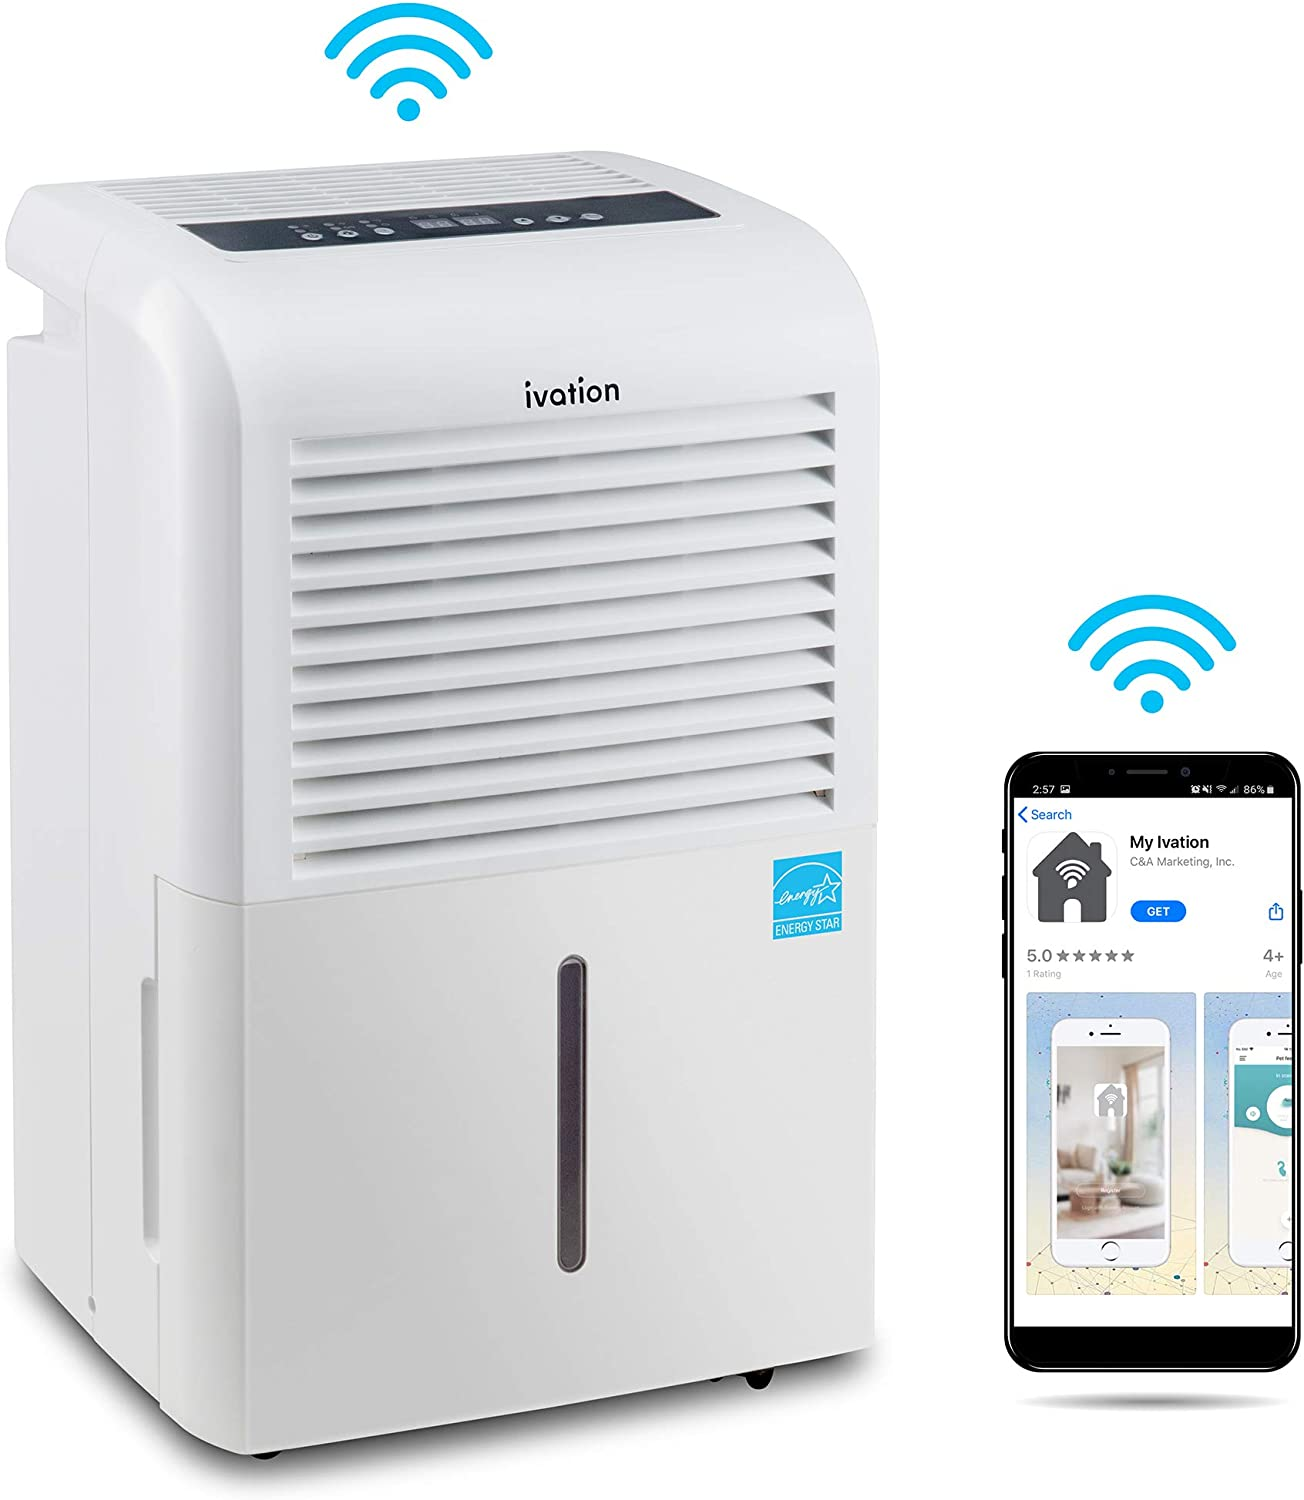 Ivation 4,500 Sq Ft Smart Wi-Fi Energy Star Dehumidifier with Pump and App, Includes Continuous Draining Hose Connector, Programmable Humidistat and 2.25 Gal Reservoir and for Medium and Large Rooms